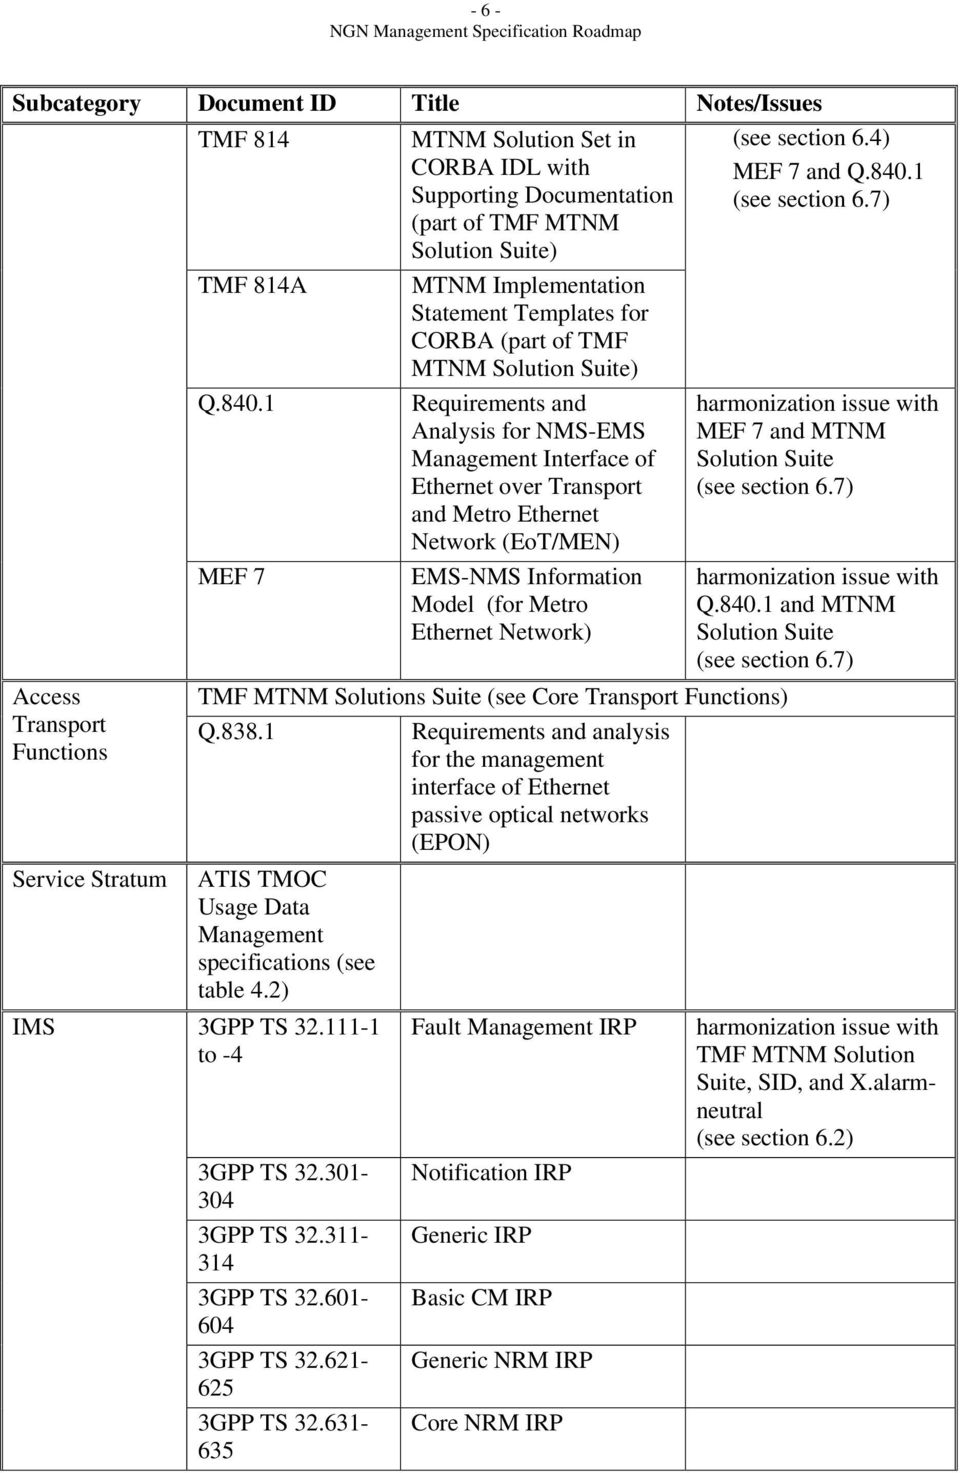 1 MEF 7 Requirements and Analysis for NMS-EMS Interface of Ethernet over Transport and Metro Ethernet Network (EoT/MEN) EMS-NMS Information Model (for Metro Ethernet Network) TMF MTNM Solutions Suite